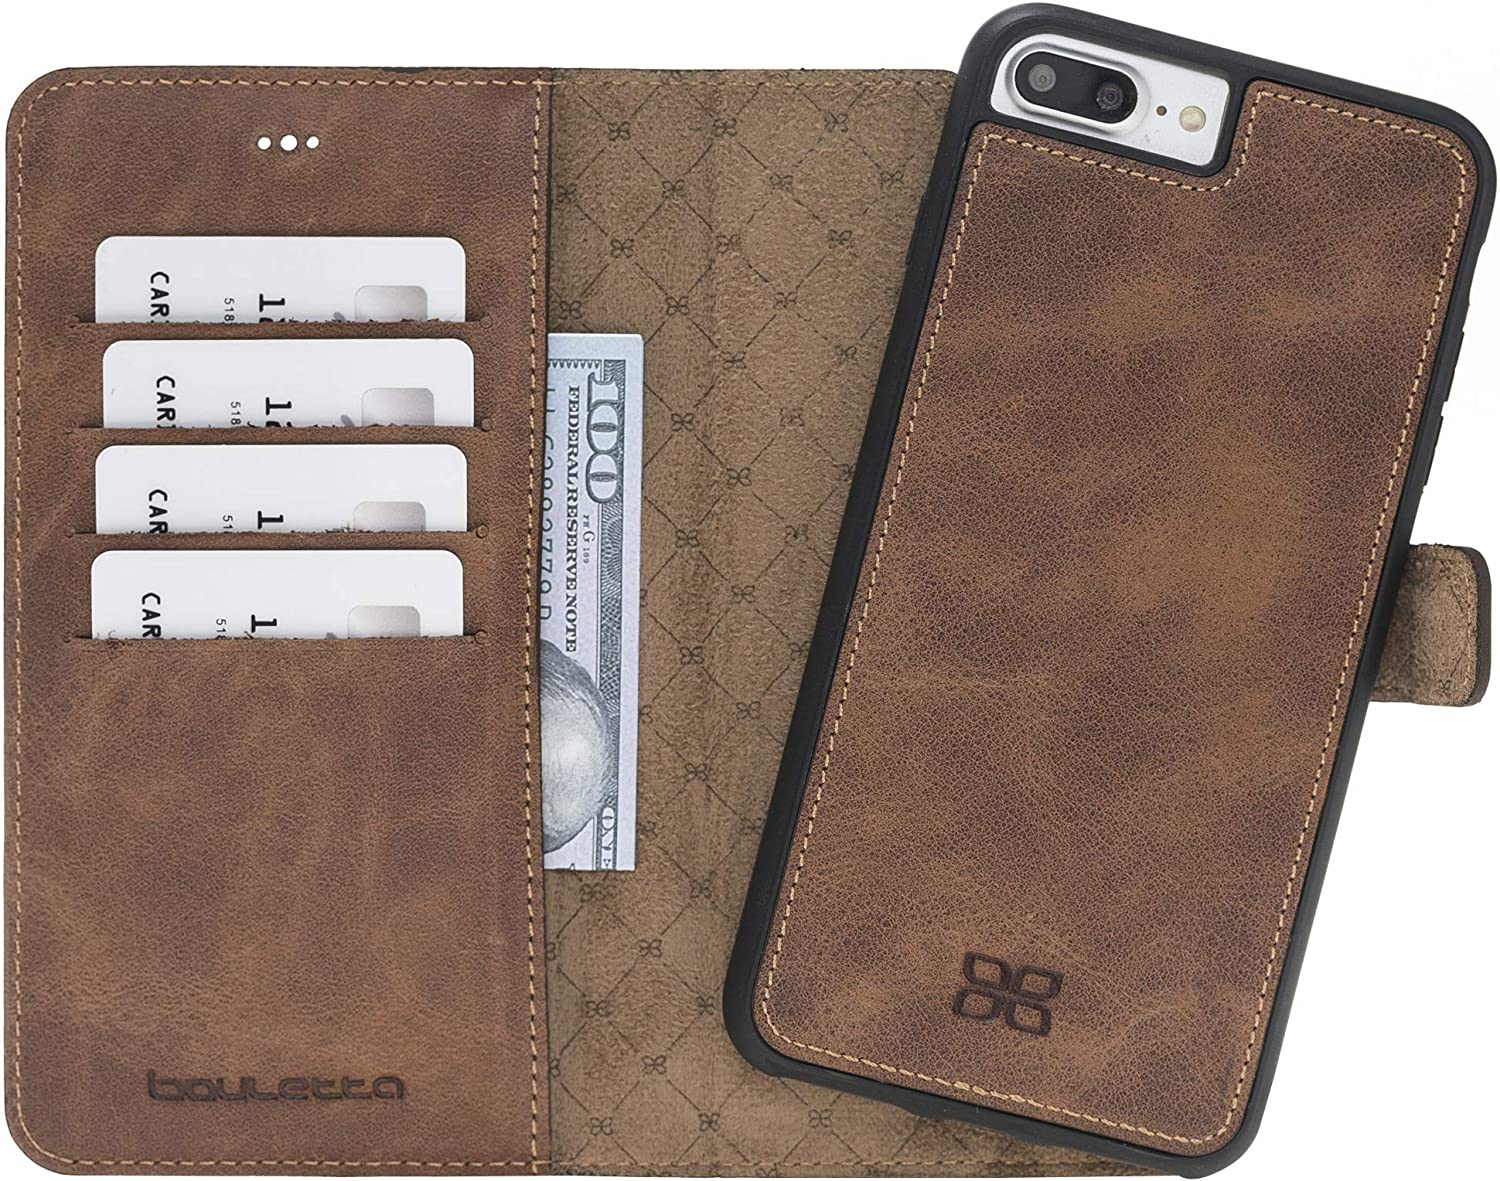 Bouletta Magic Free Shipping New Wallet Genuine Leather Under blast sales Phone Appl Case Mobile for